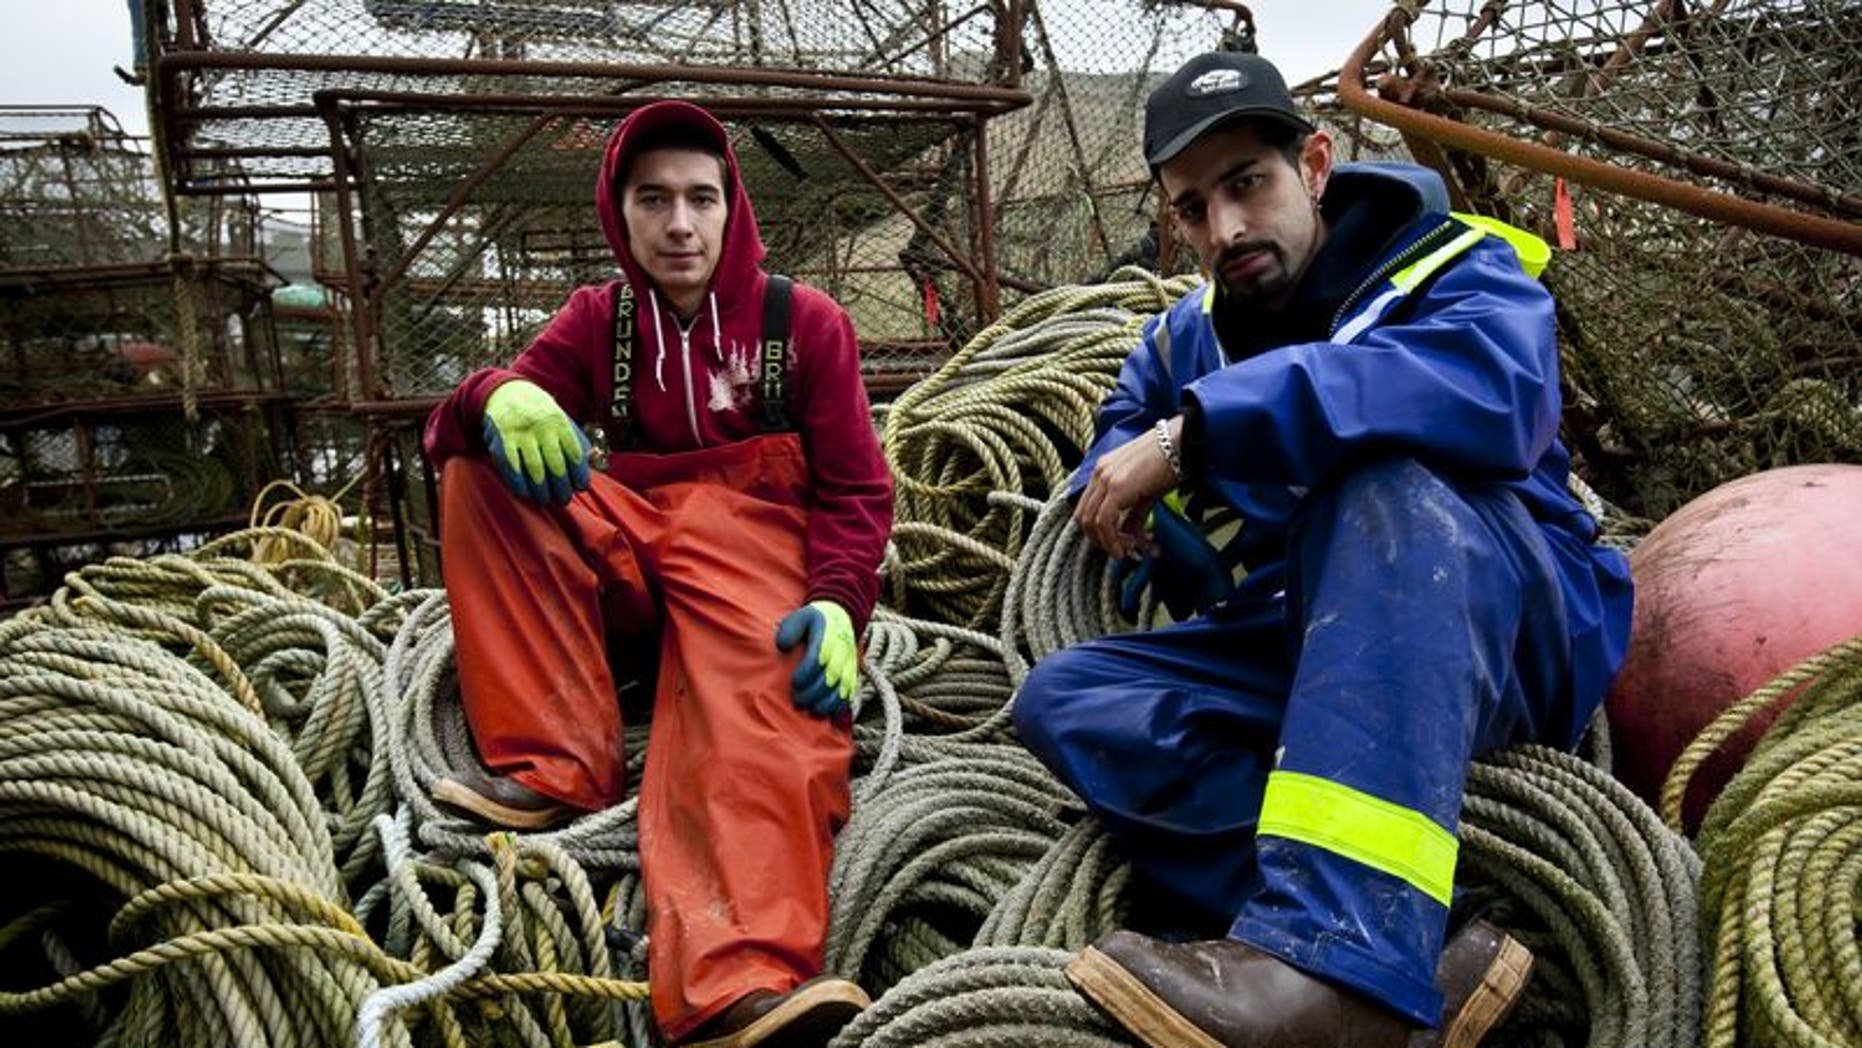 Cornelia Marie Deckhands and brothers Jake Harris (left) and Josh Harris are photographed during Deadliest Catch season six.